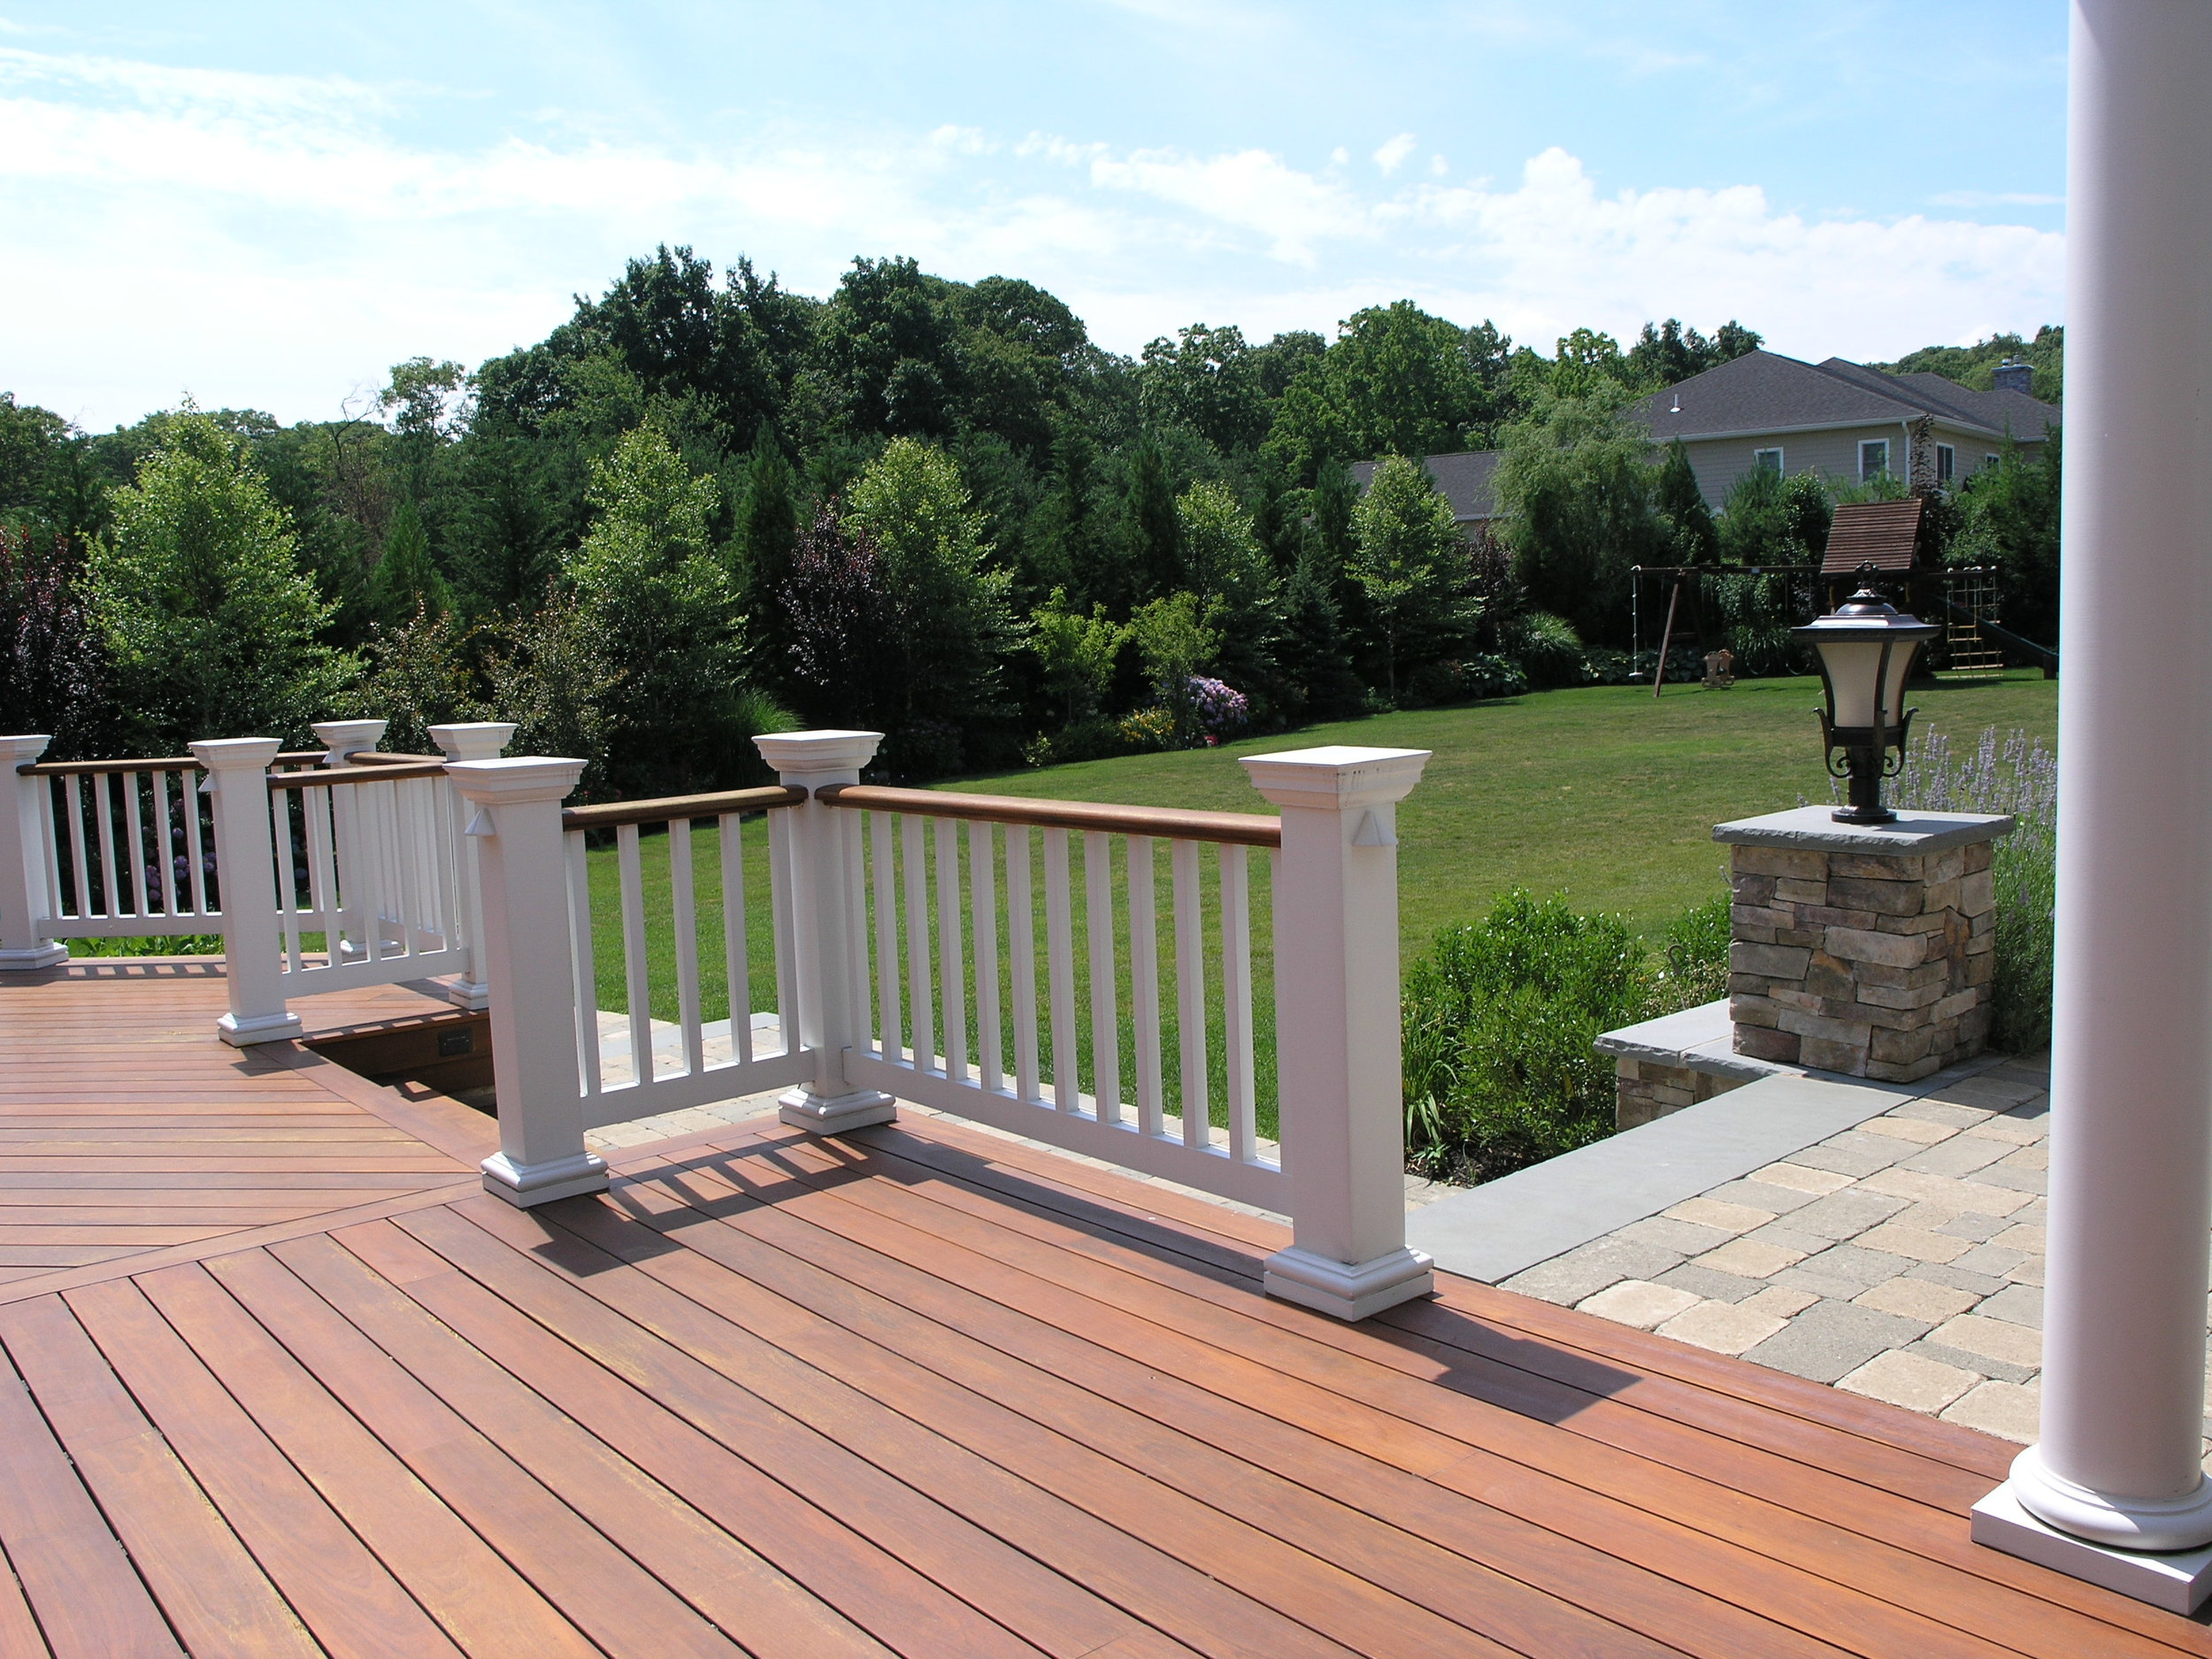 Top fence railing landscape design company in Long Island, NY